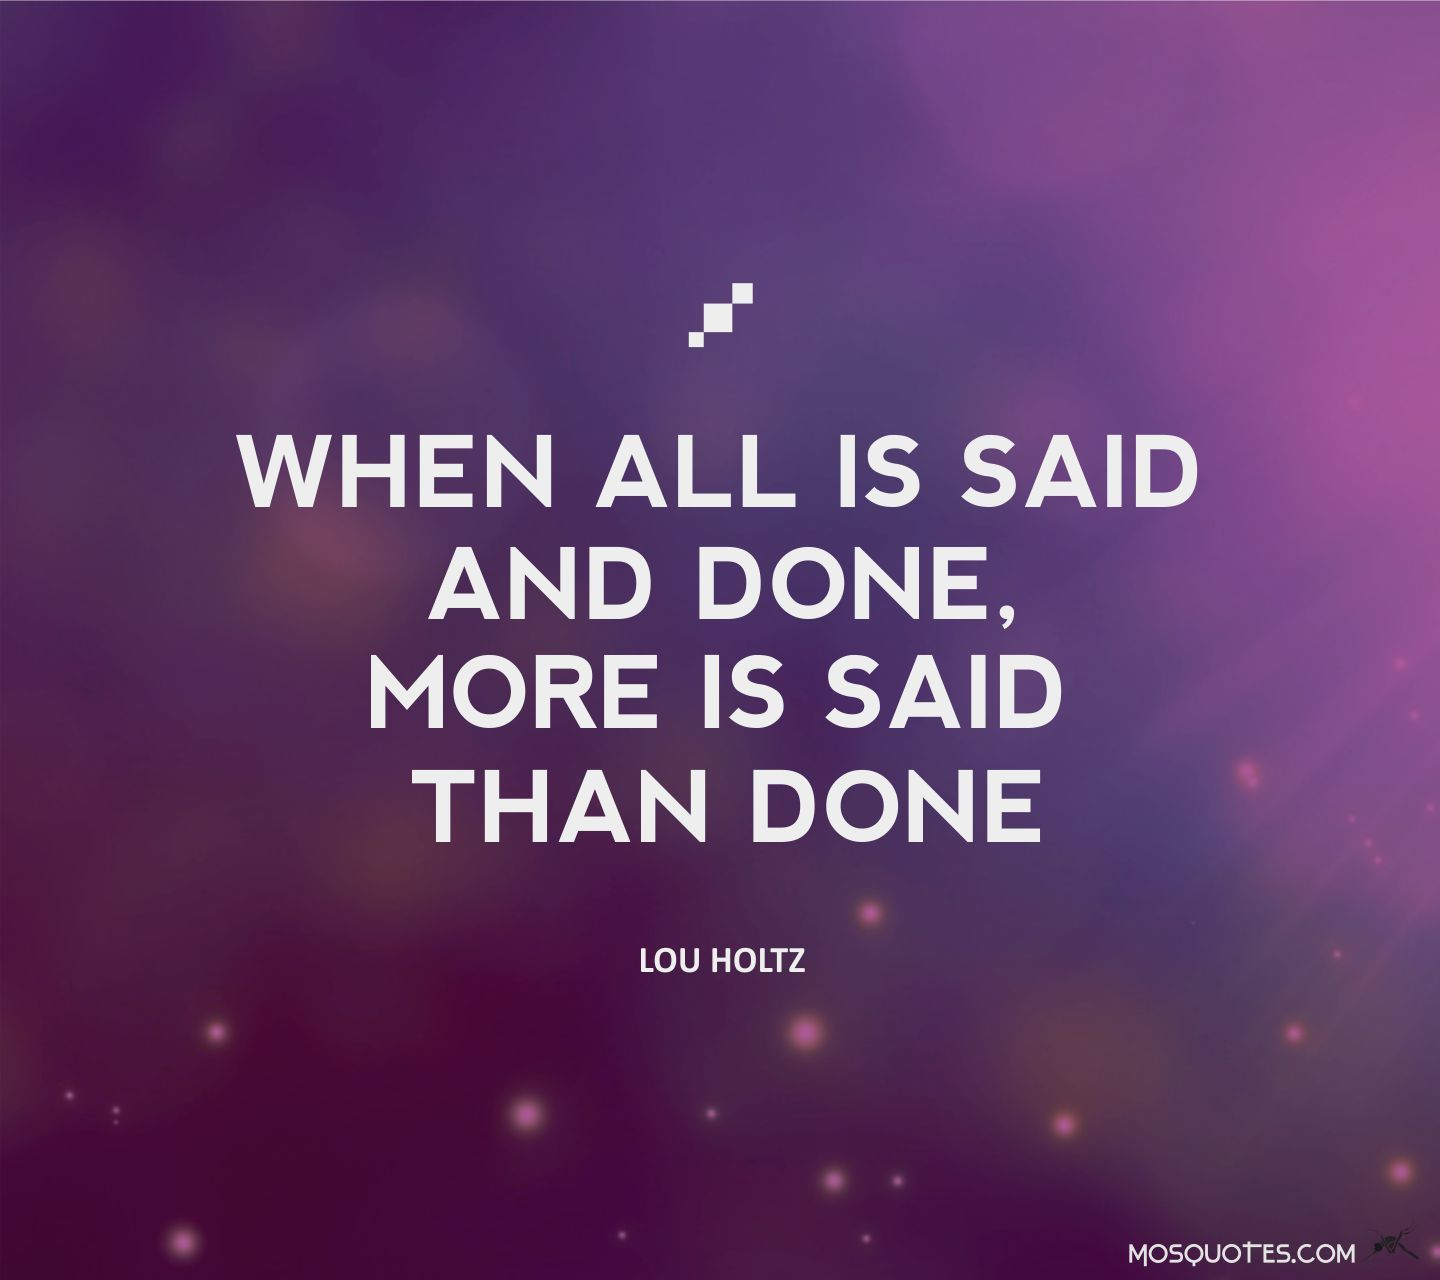 Motivational Quotes When All Is Said And Done More Is Said Than Done Lou Holtz Lou Holtz Quotes Quotes Inspirational Quotes